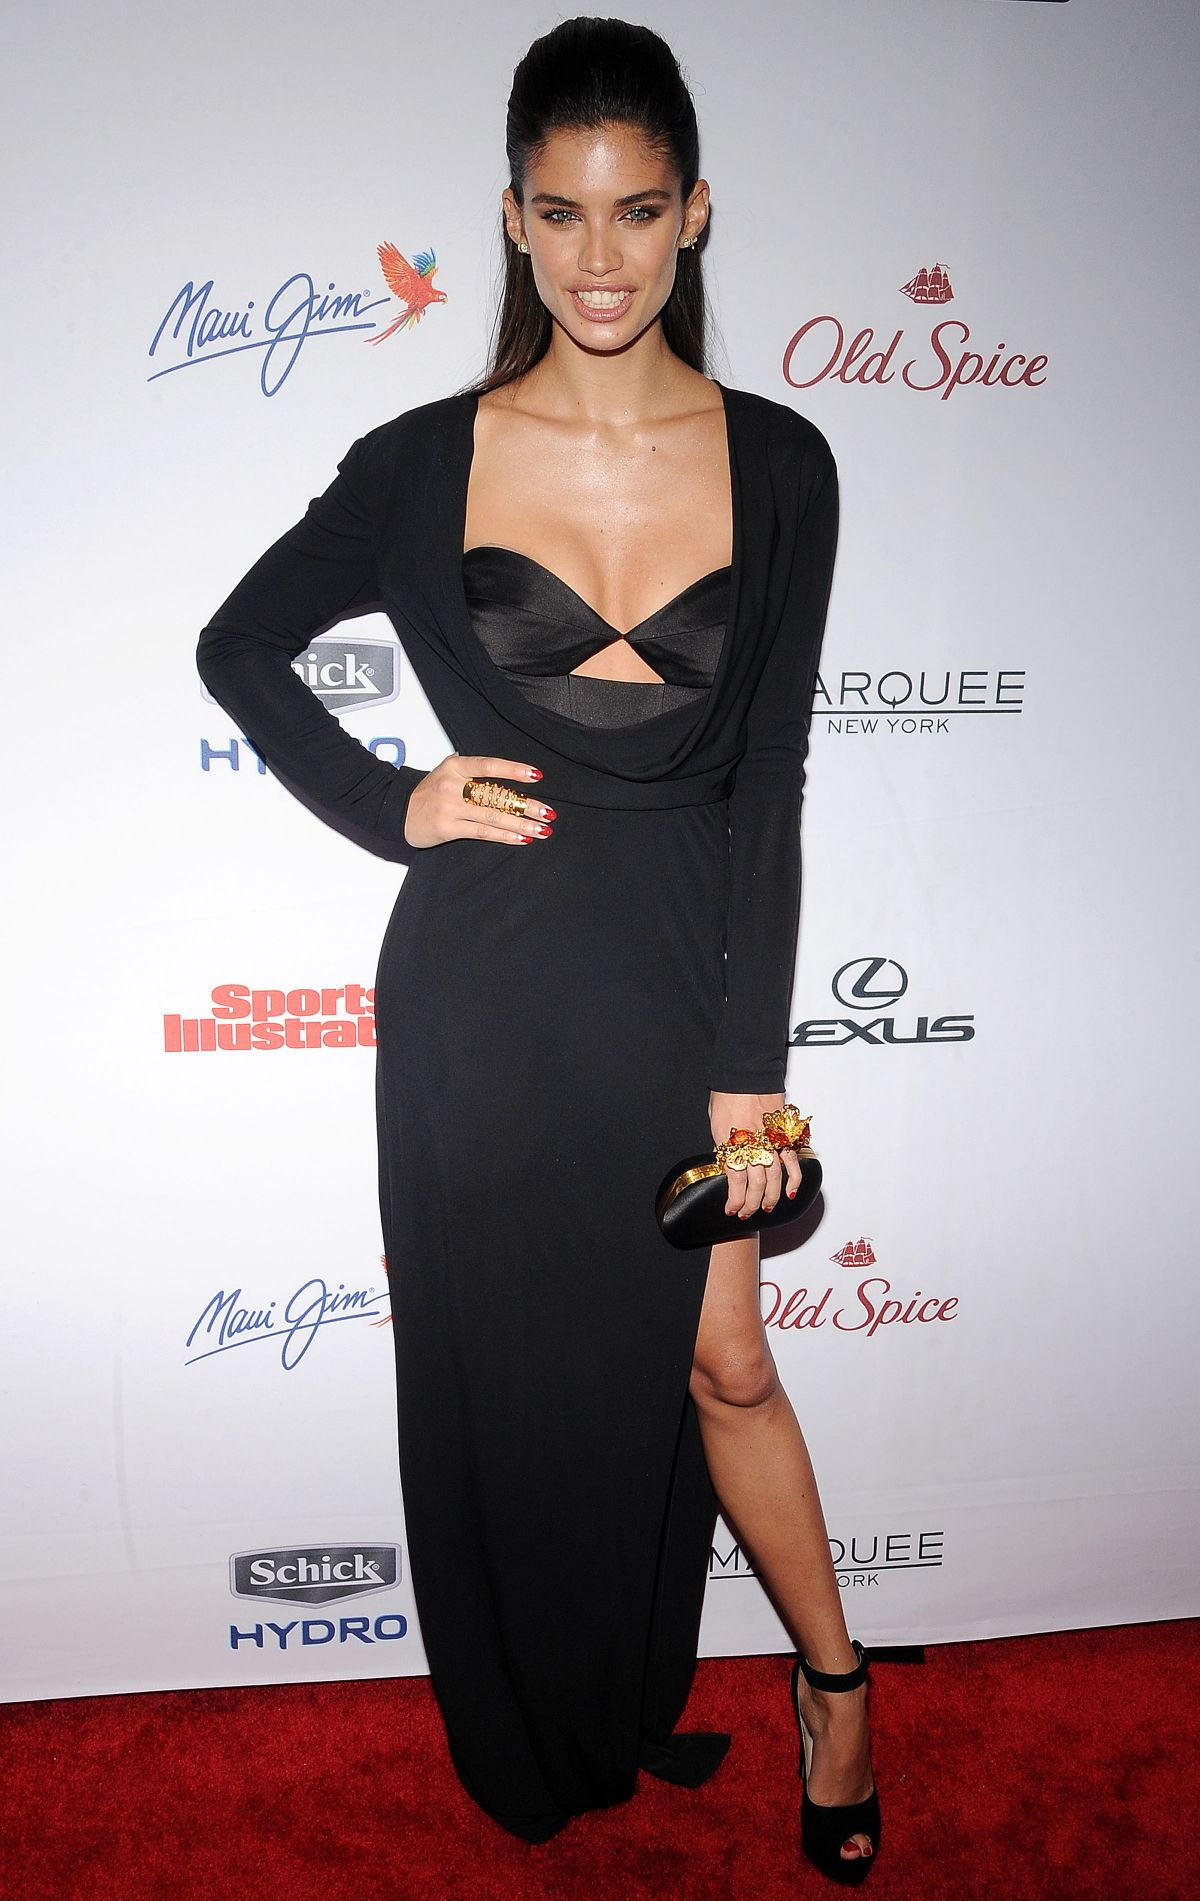 SARA SAMPAIO at 2015 Sports Illustrated Swimsuit Issue Celebration in New York